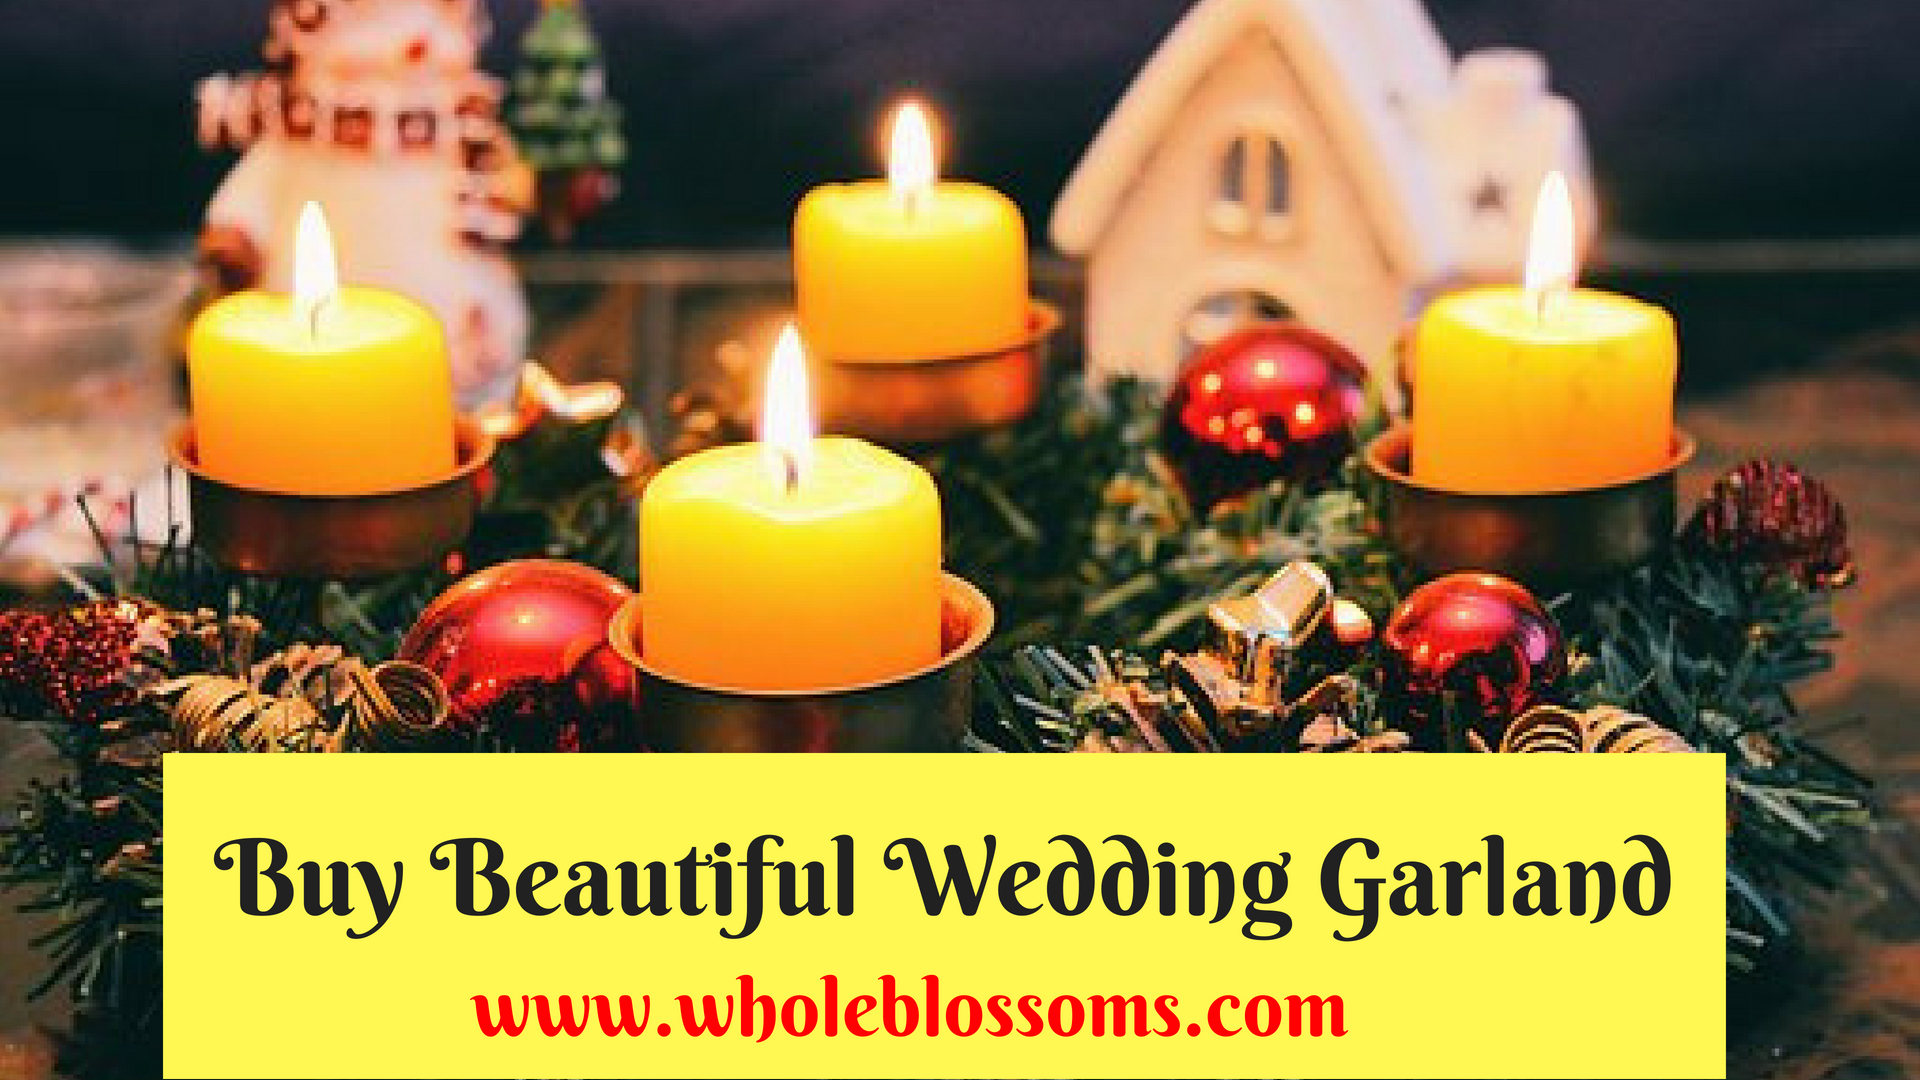 Looking to Buy Amazing Flower Garland Wedding for Sale at Influential Prices